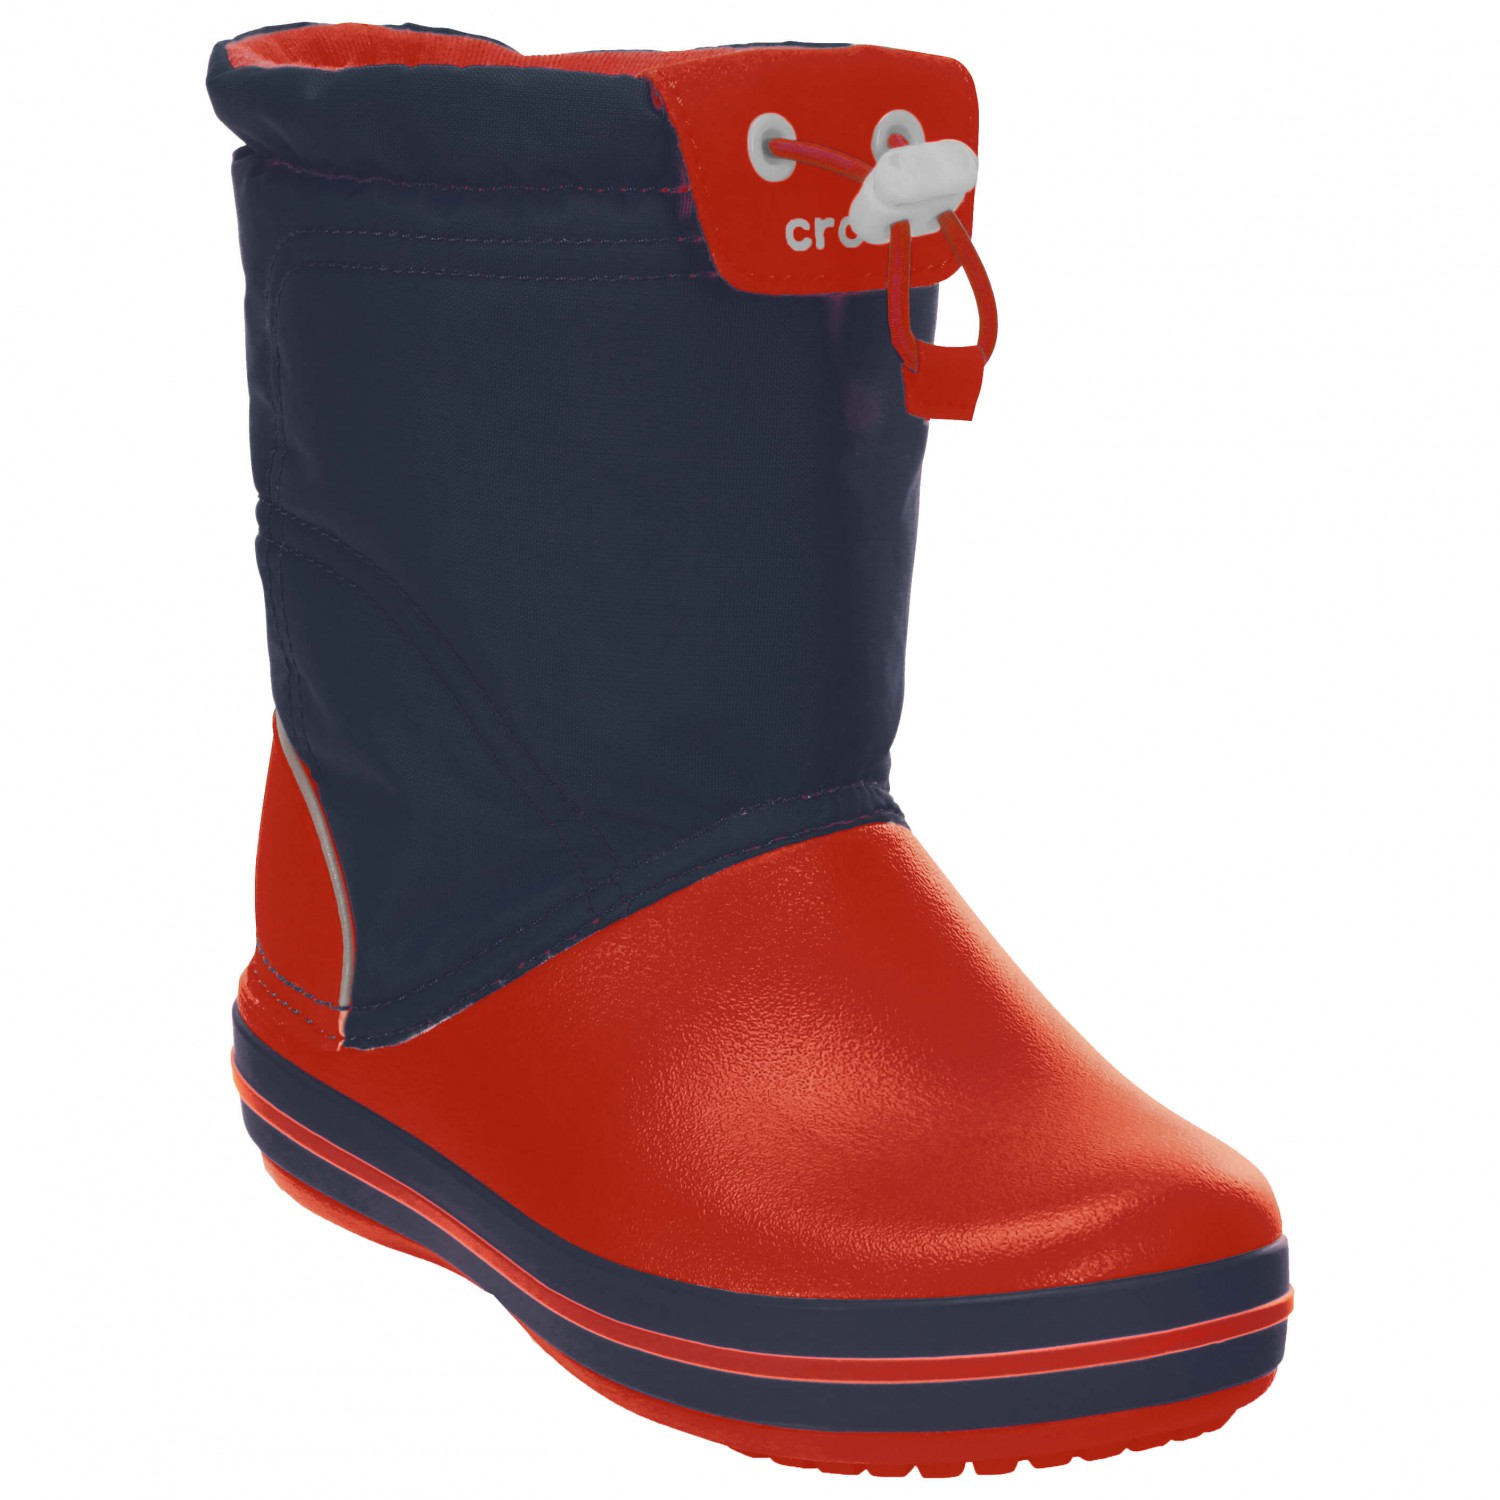 Crocs Crocband Lodgepoint Boot Winter Boots Kids Buy